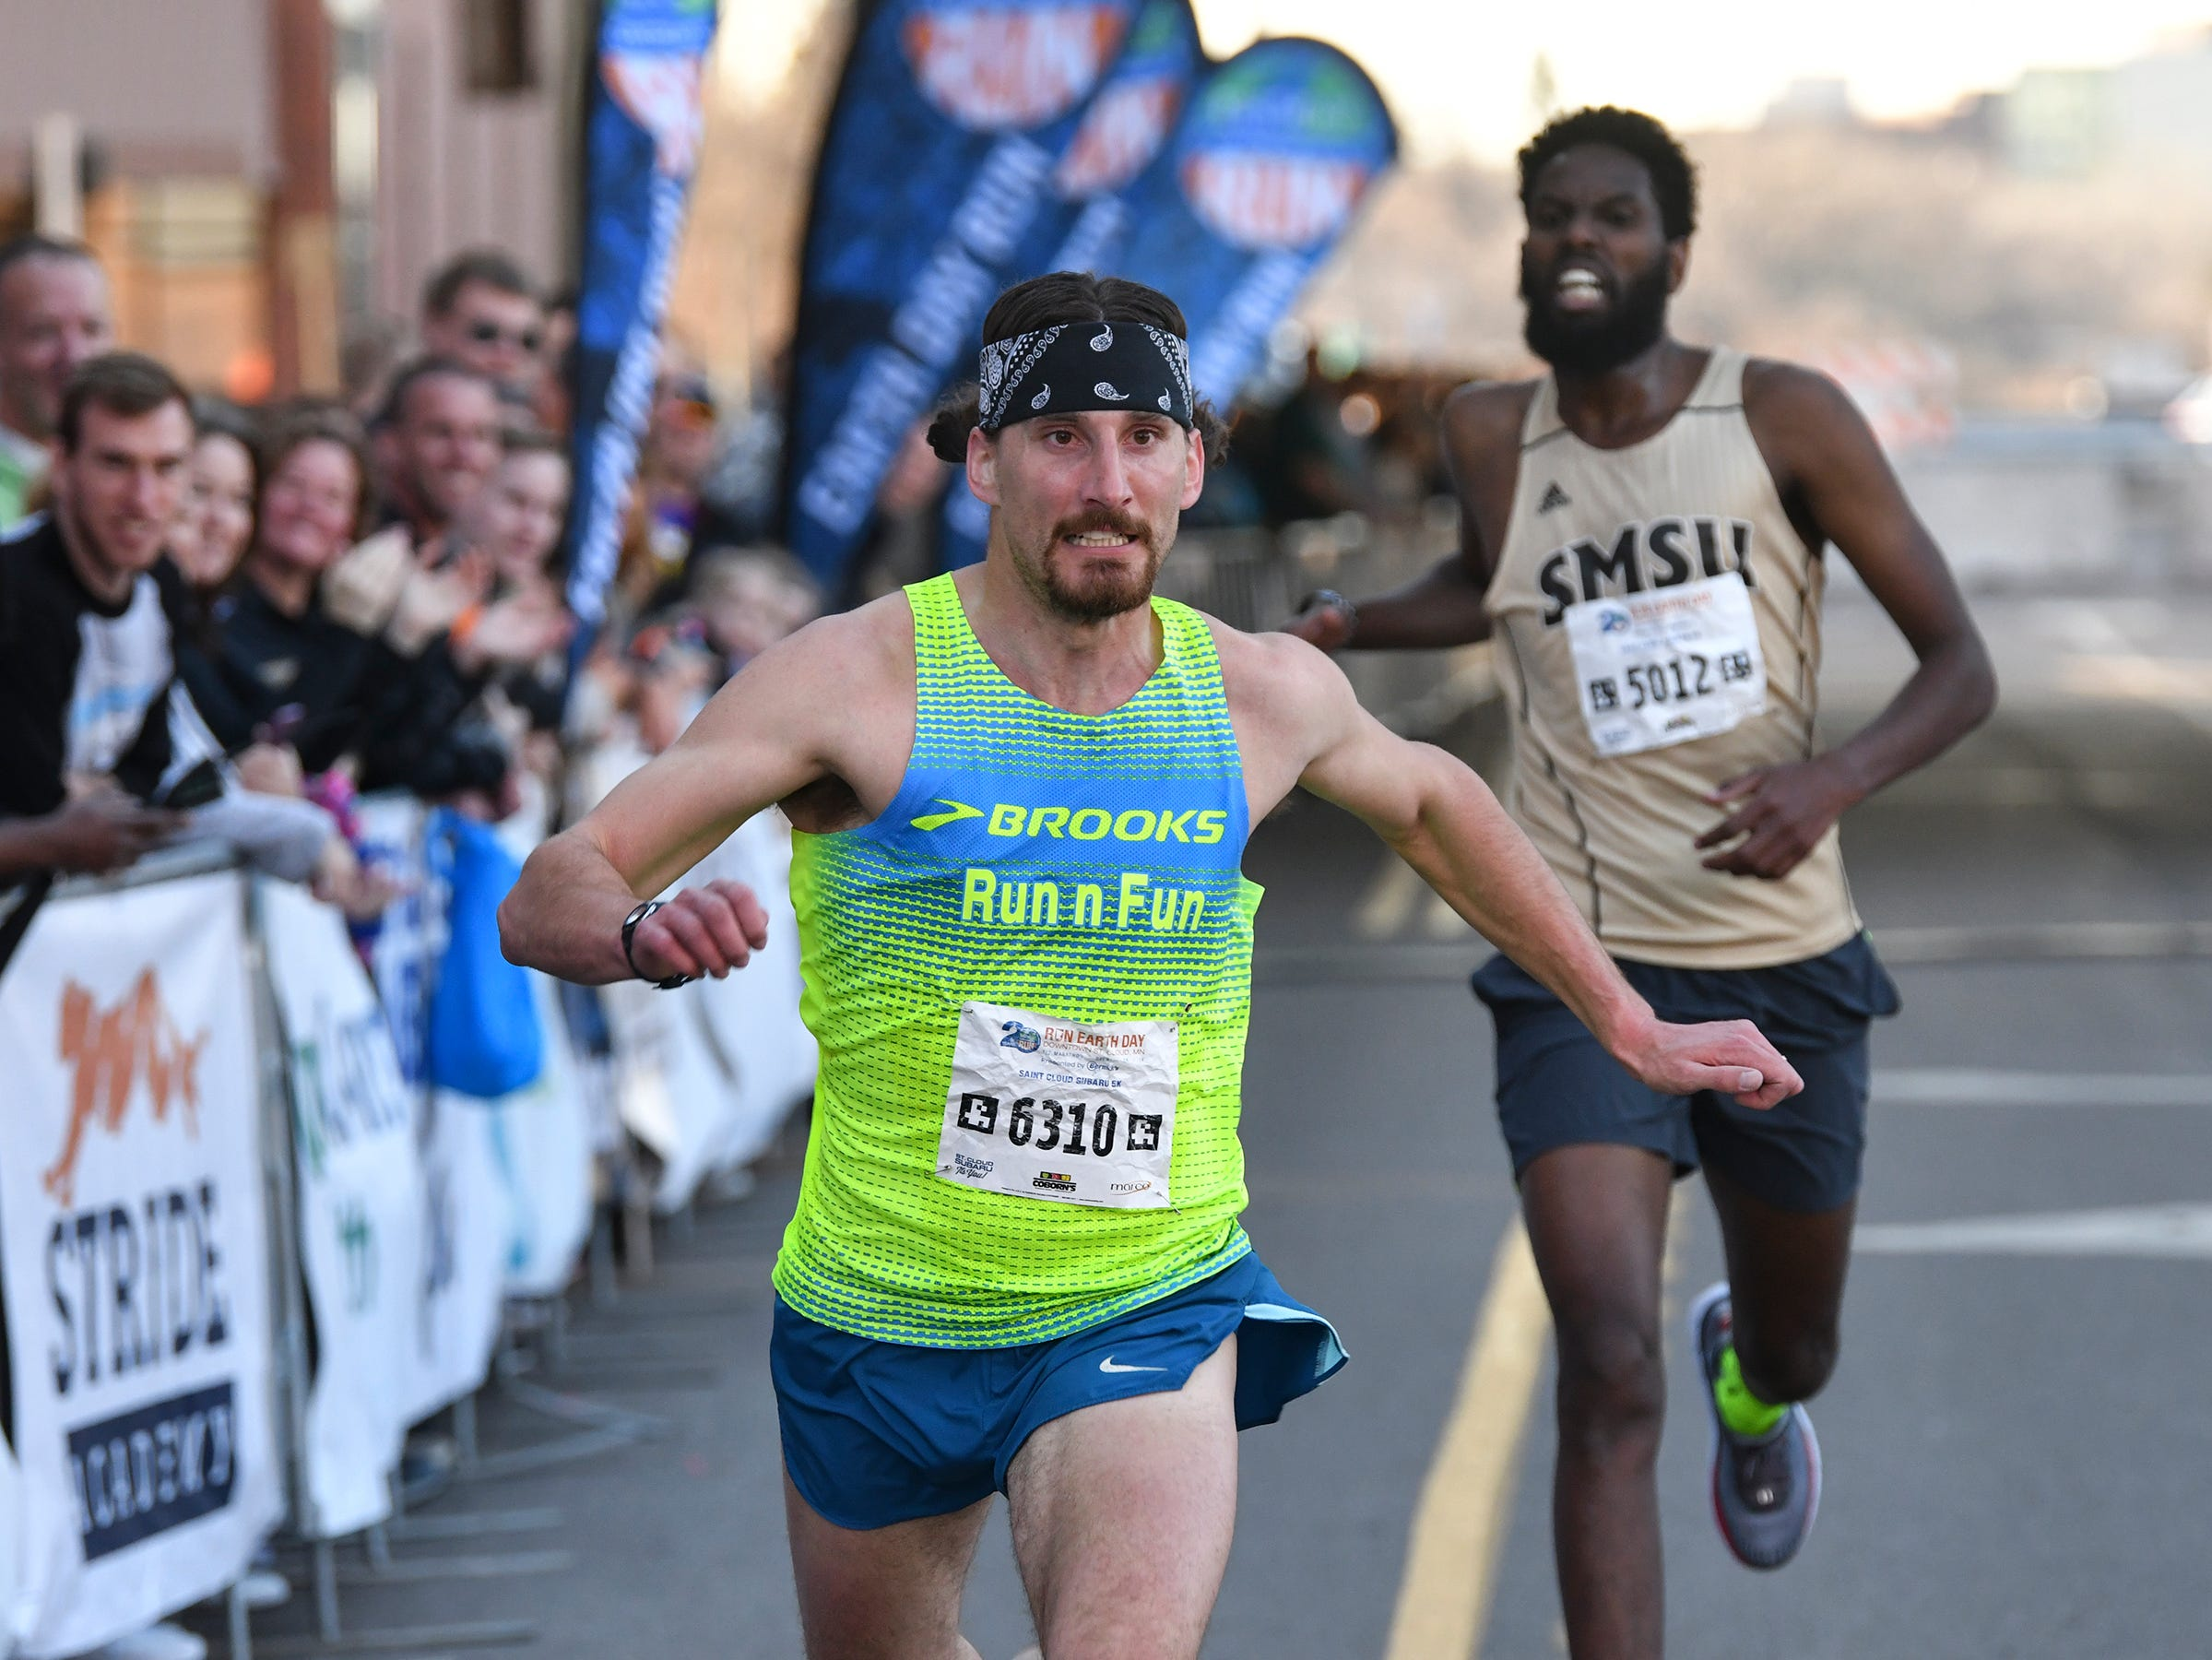 Jonathan Stoltman was the first place finisher in the St. Cloud Subaru 5K run/walk Friday in downtown St. Cloud with a time of 16:25.